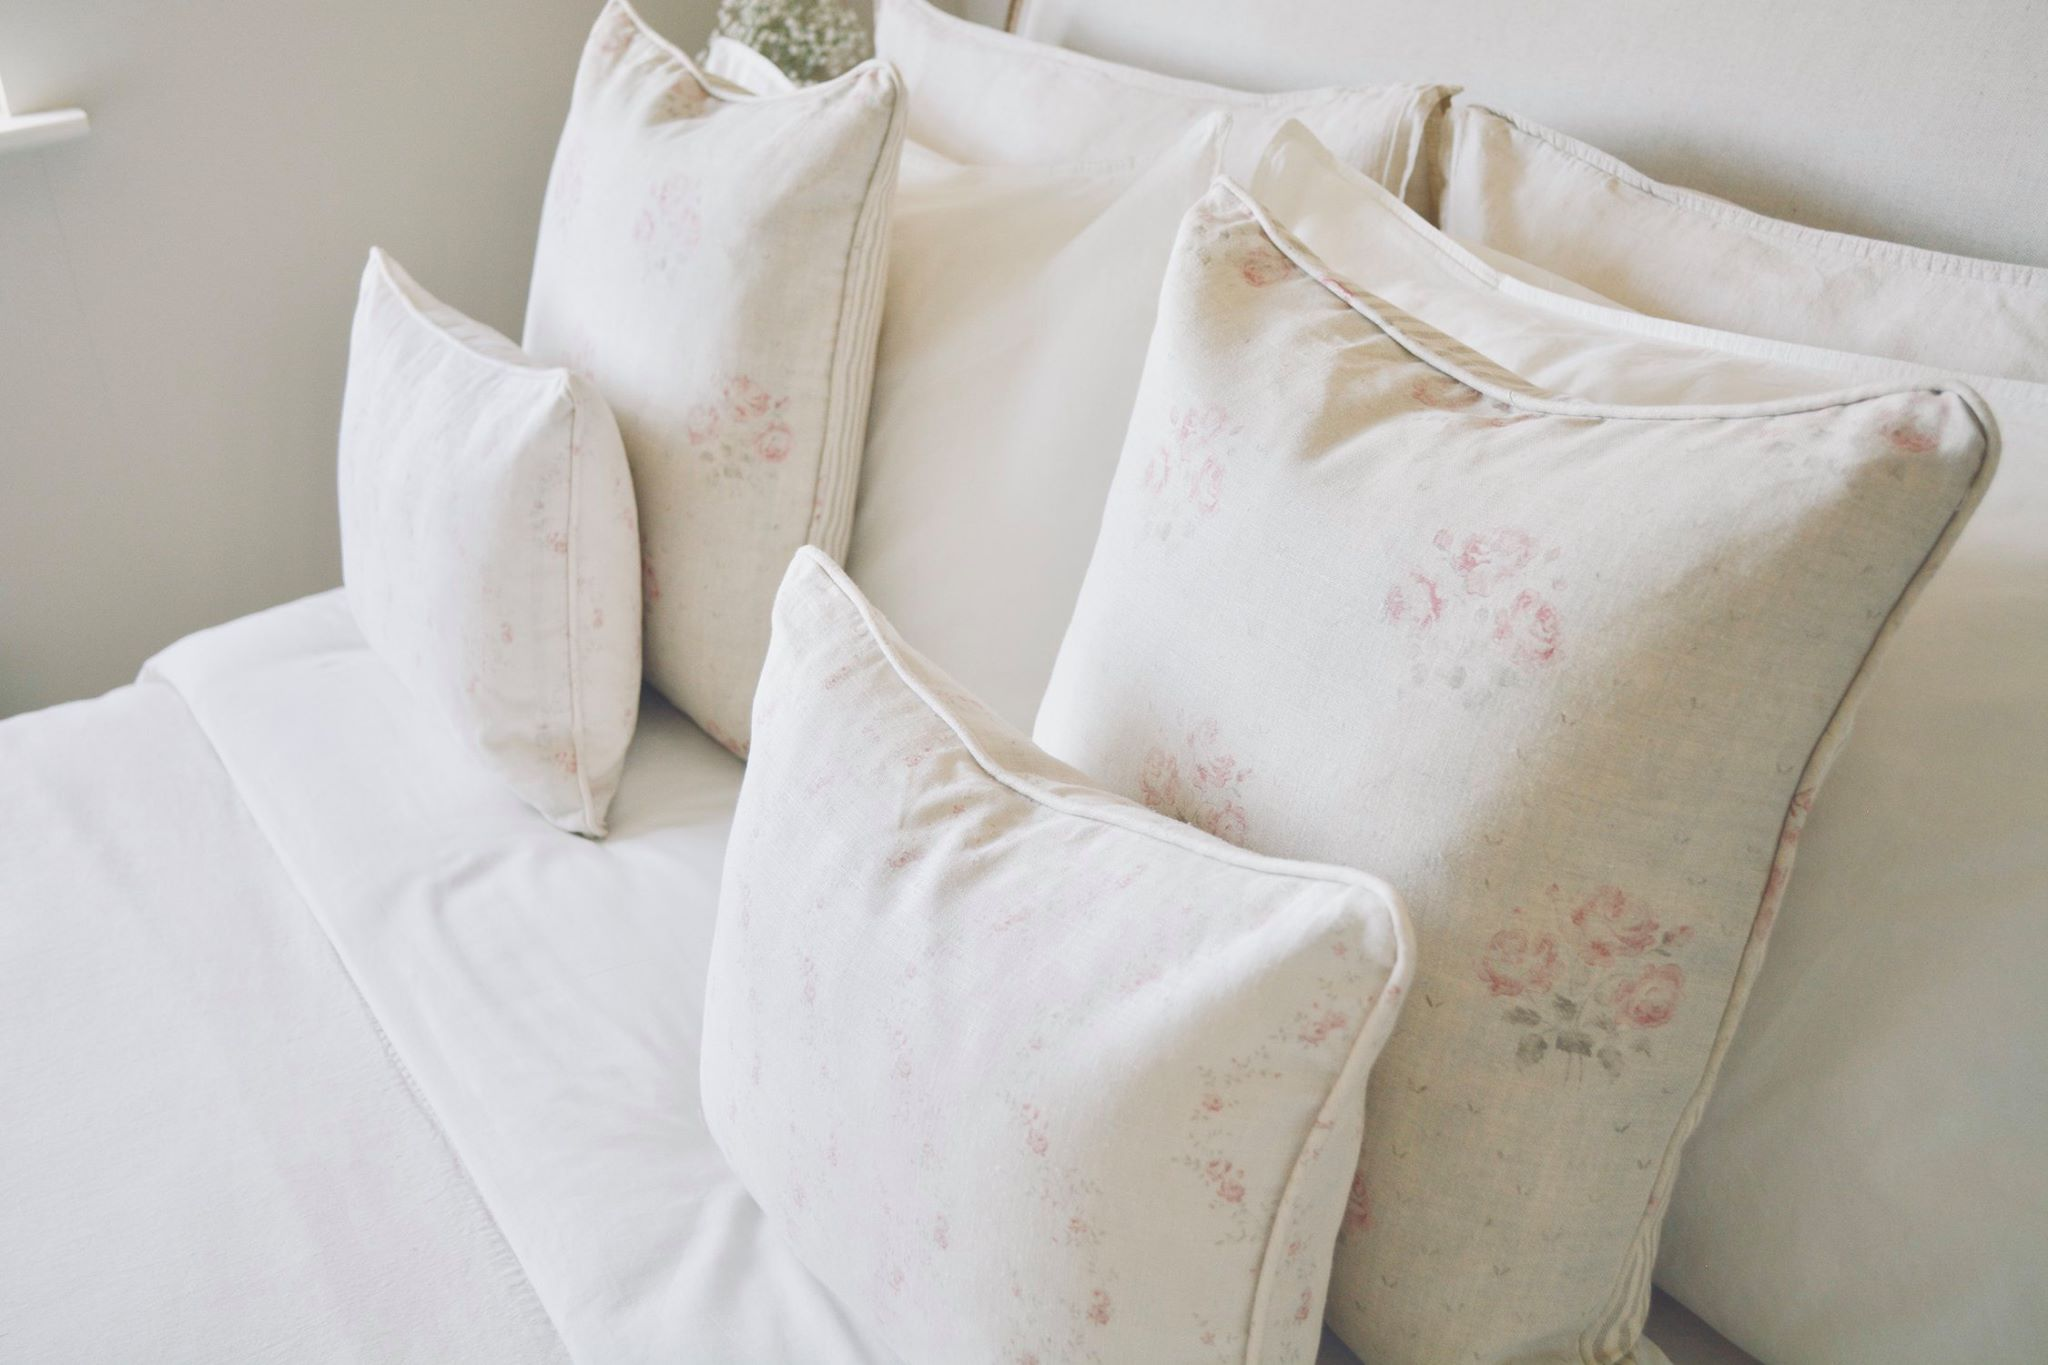 Cottage Bedroom with faded floral linens designed by www.hlinteriors.co.uk22.jpg